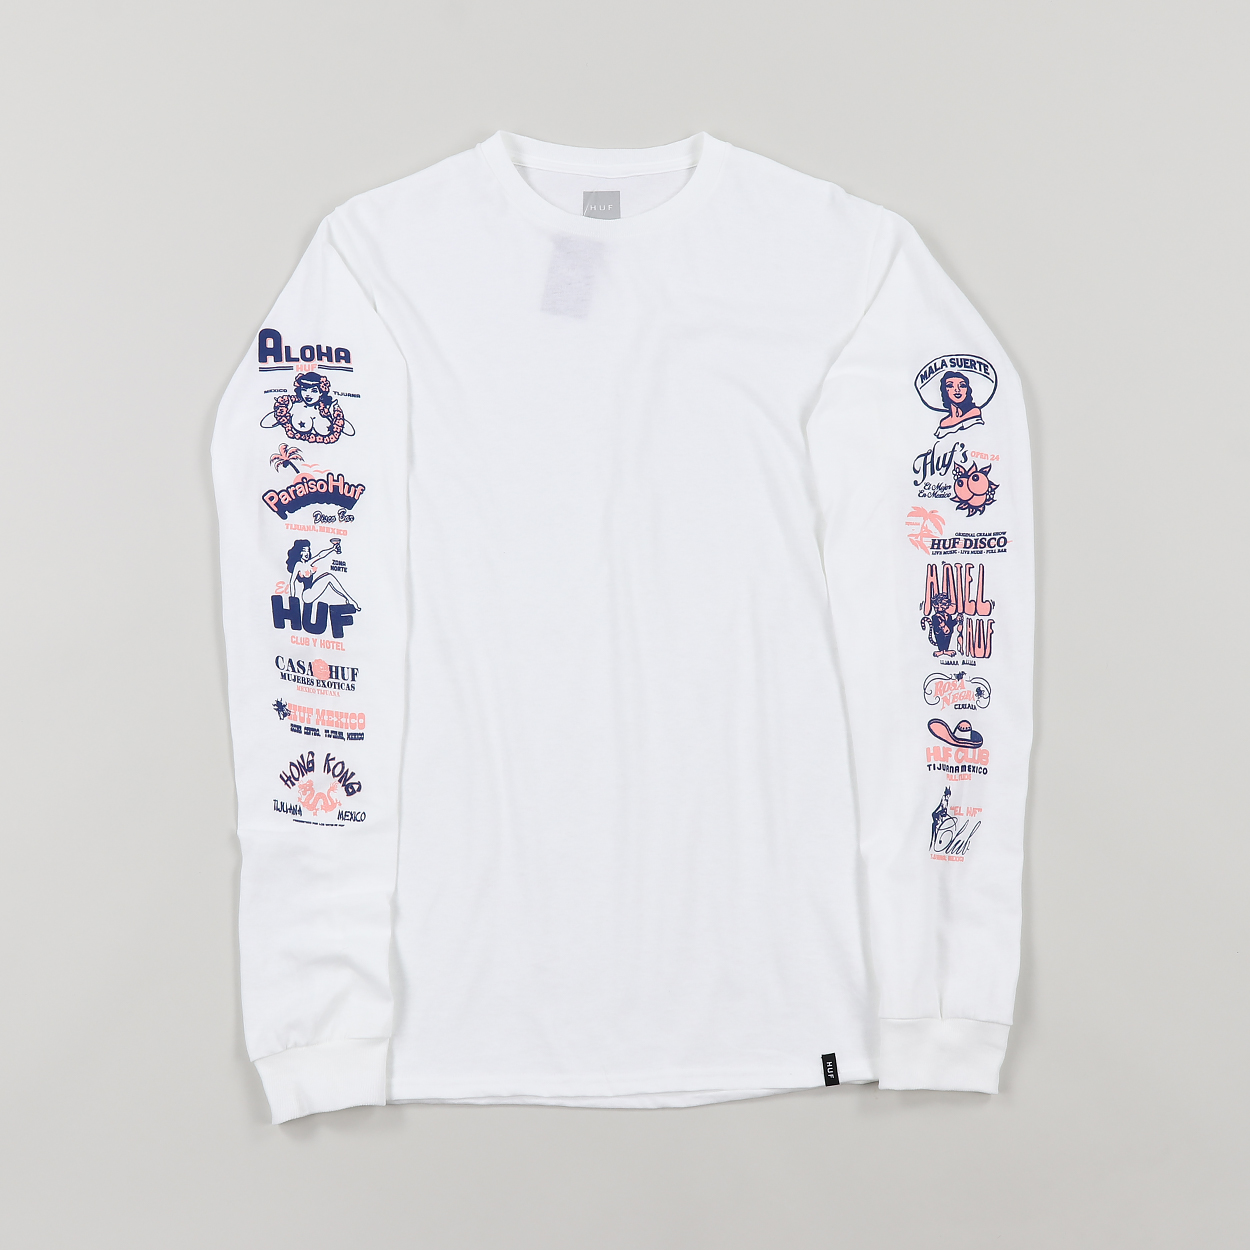 471114532667 Huf Mens Collage Long Sleeve Cotton Graphic T Shirt Tee White £28.00